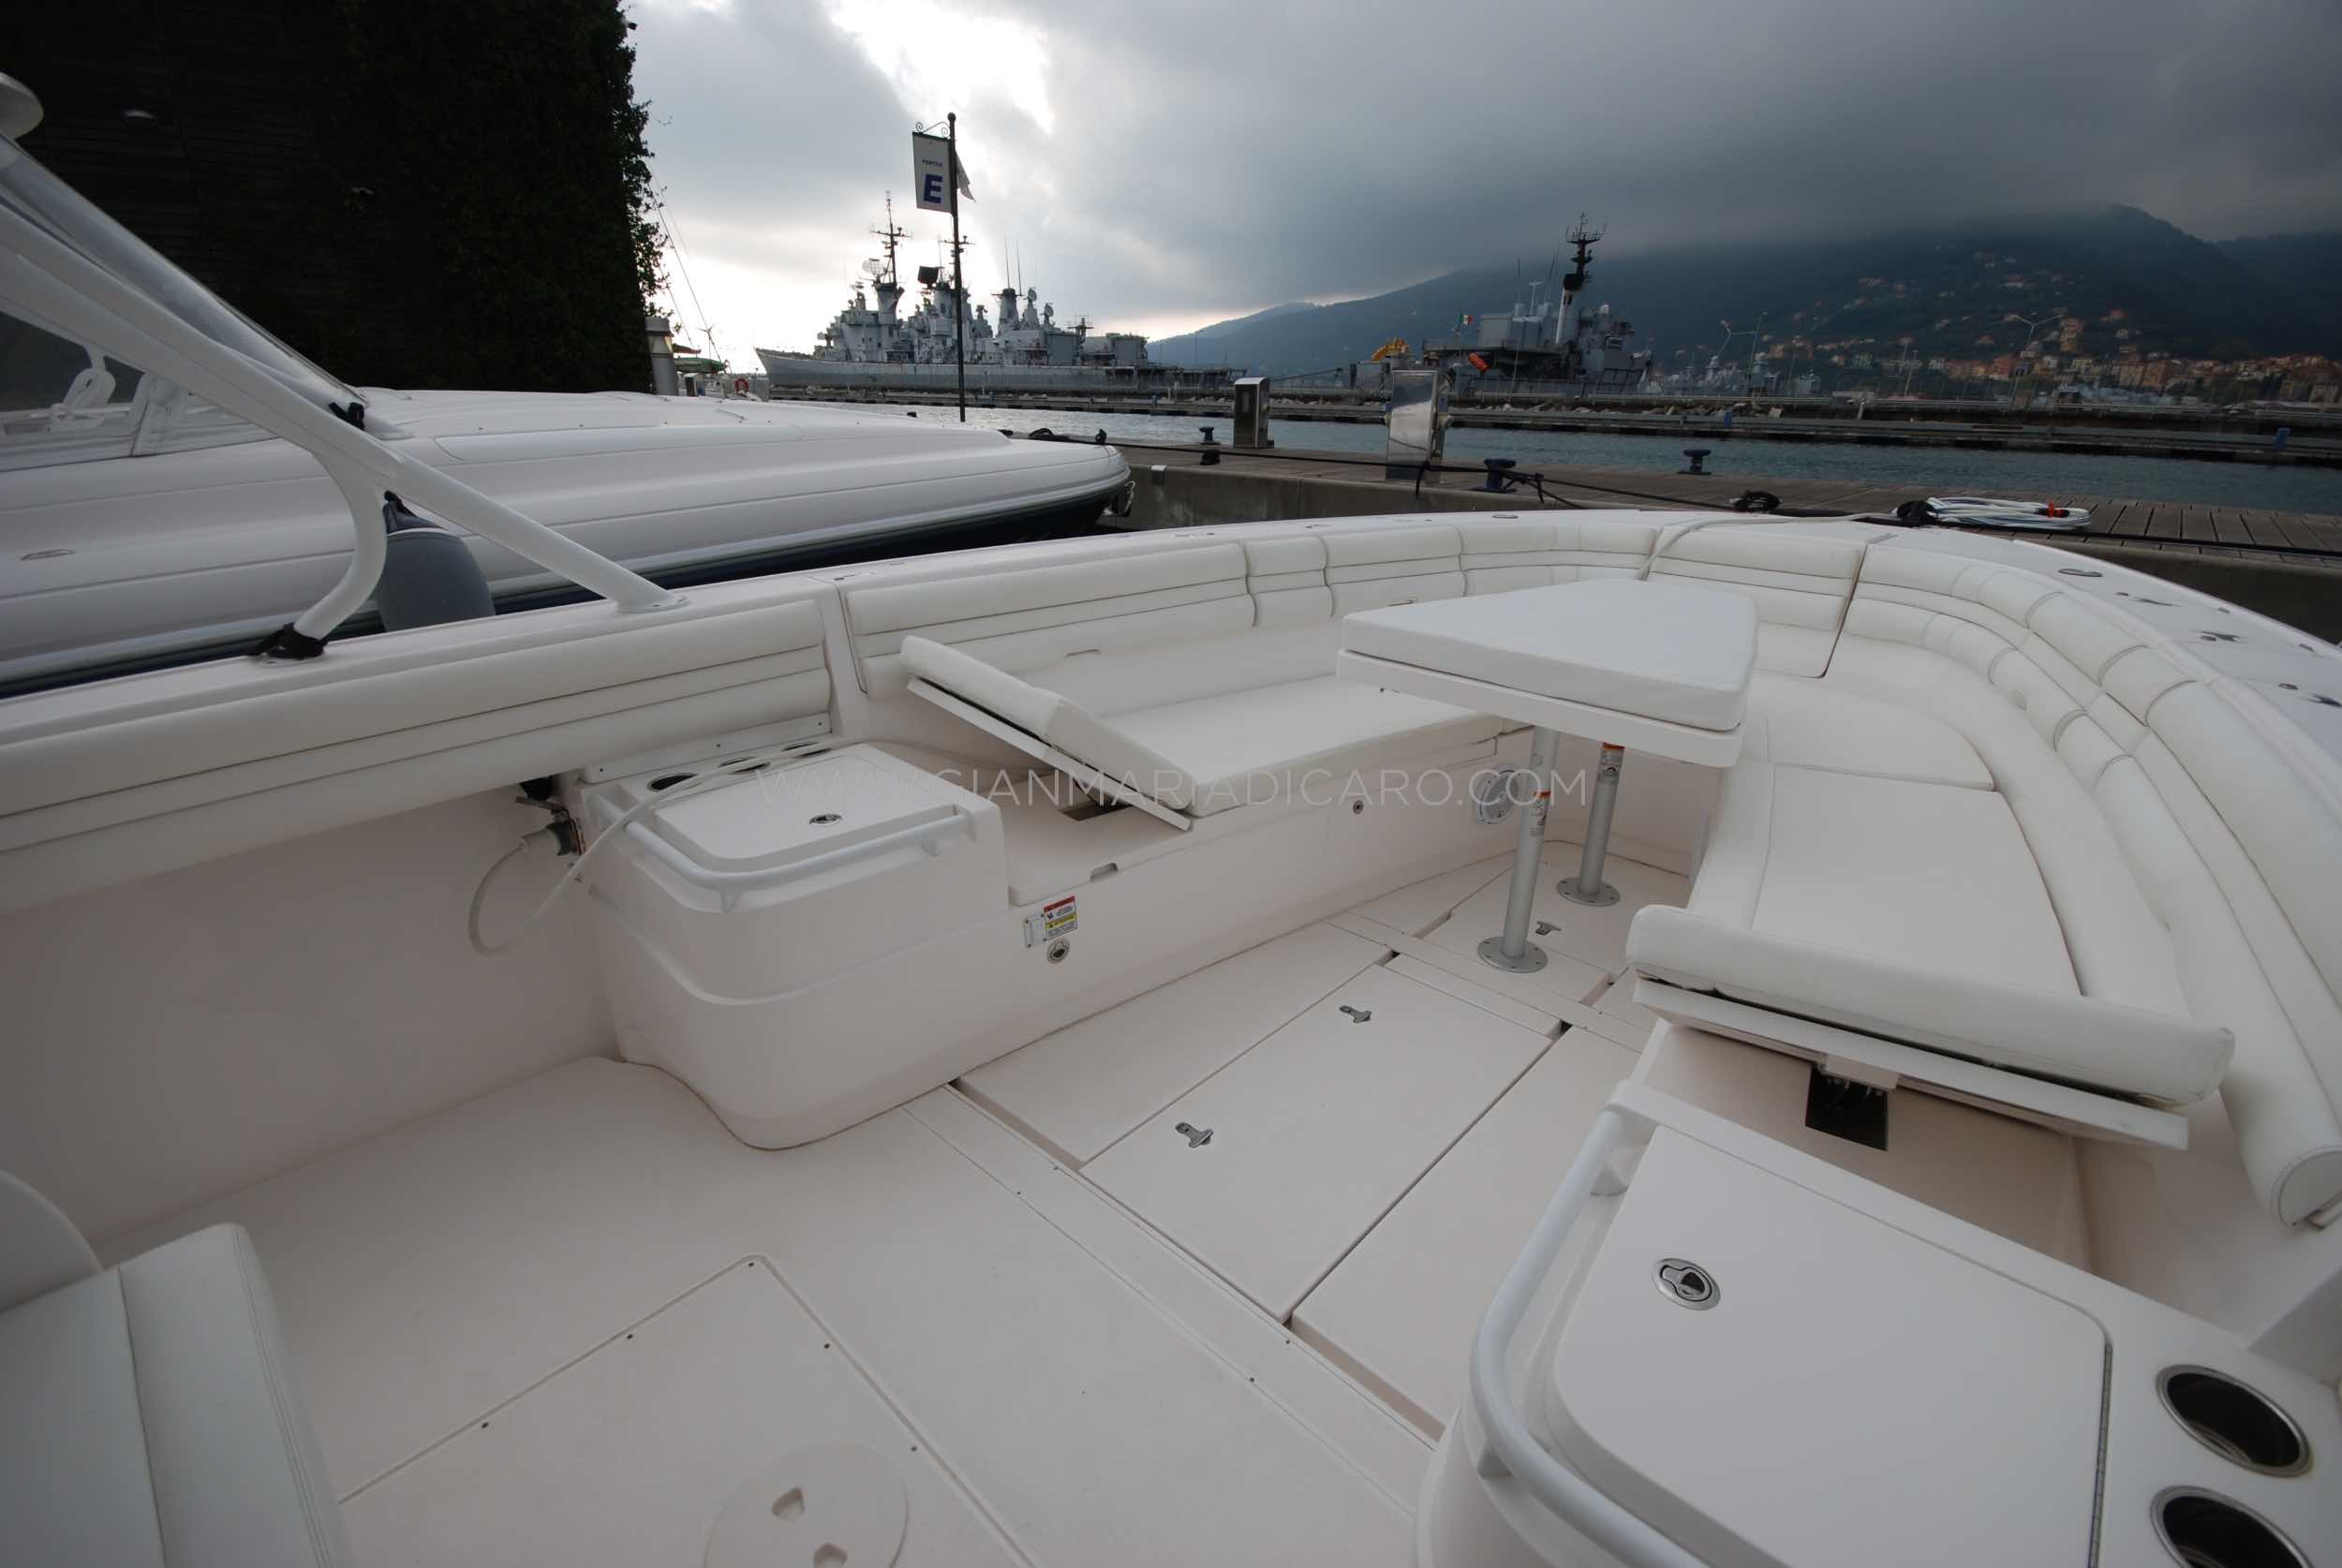 intrepid-400-centre-console-z-blonde-for-sale-13.jpg